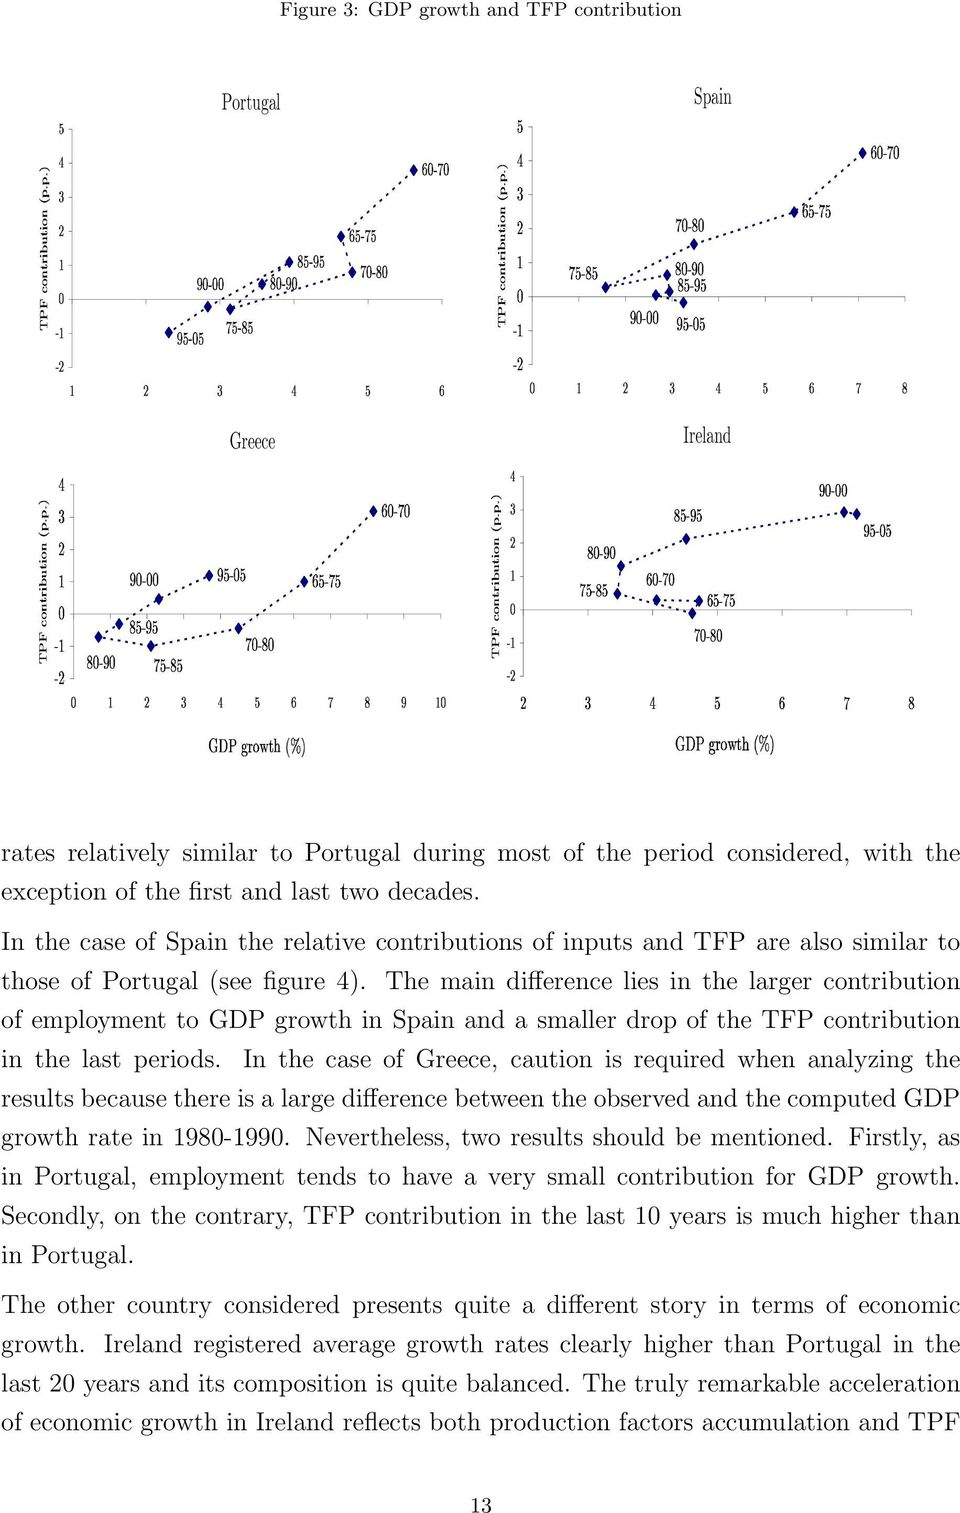 In the case of Spain the relative contributions of inputs and TFP are also similar to those of Portugal (see figure 4).